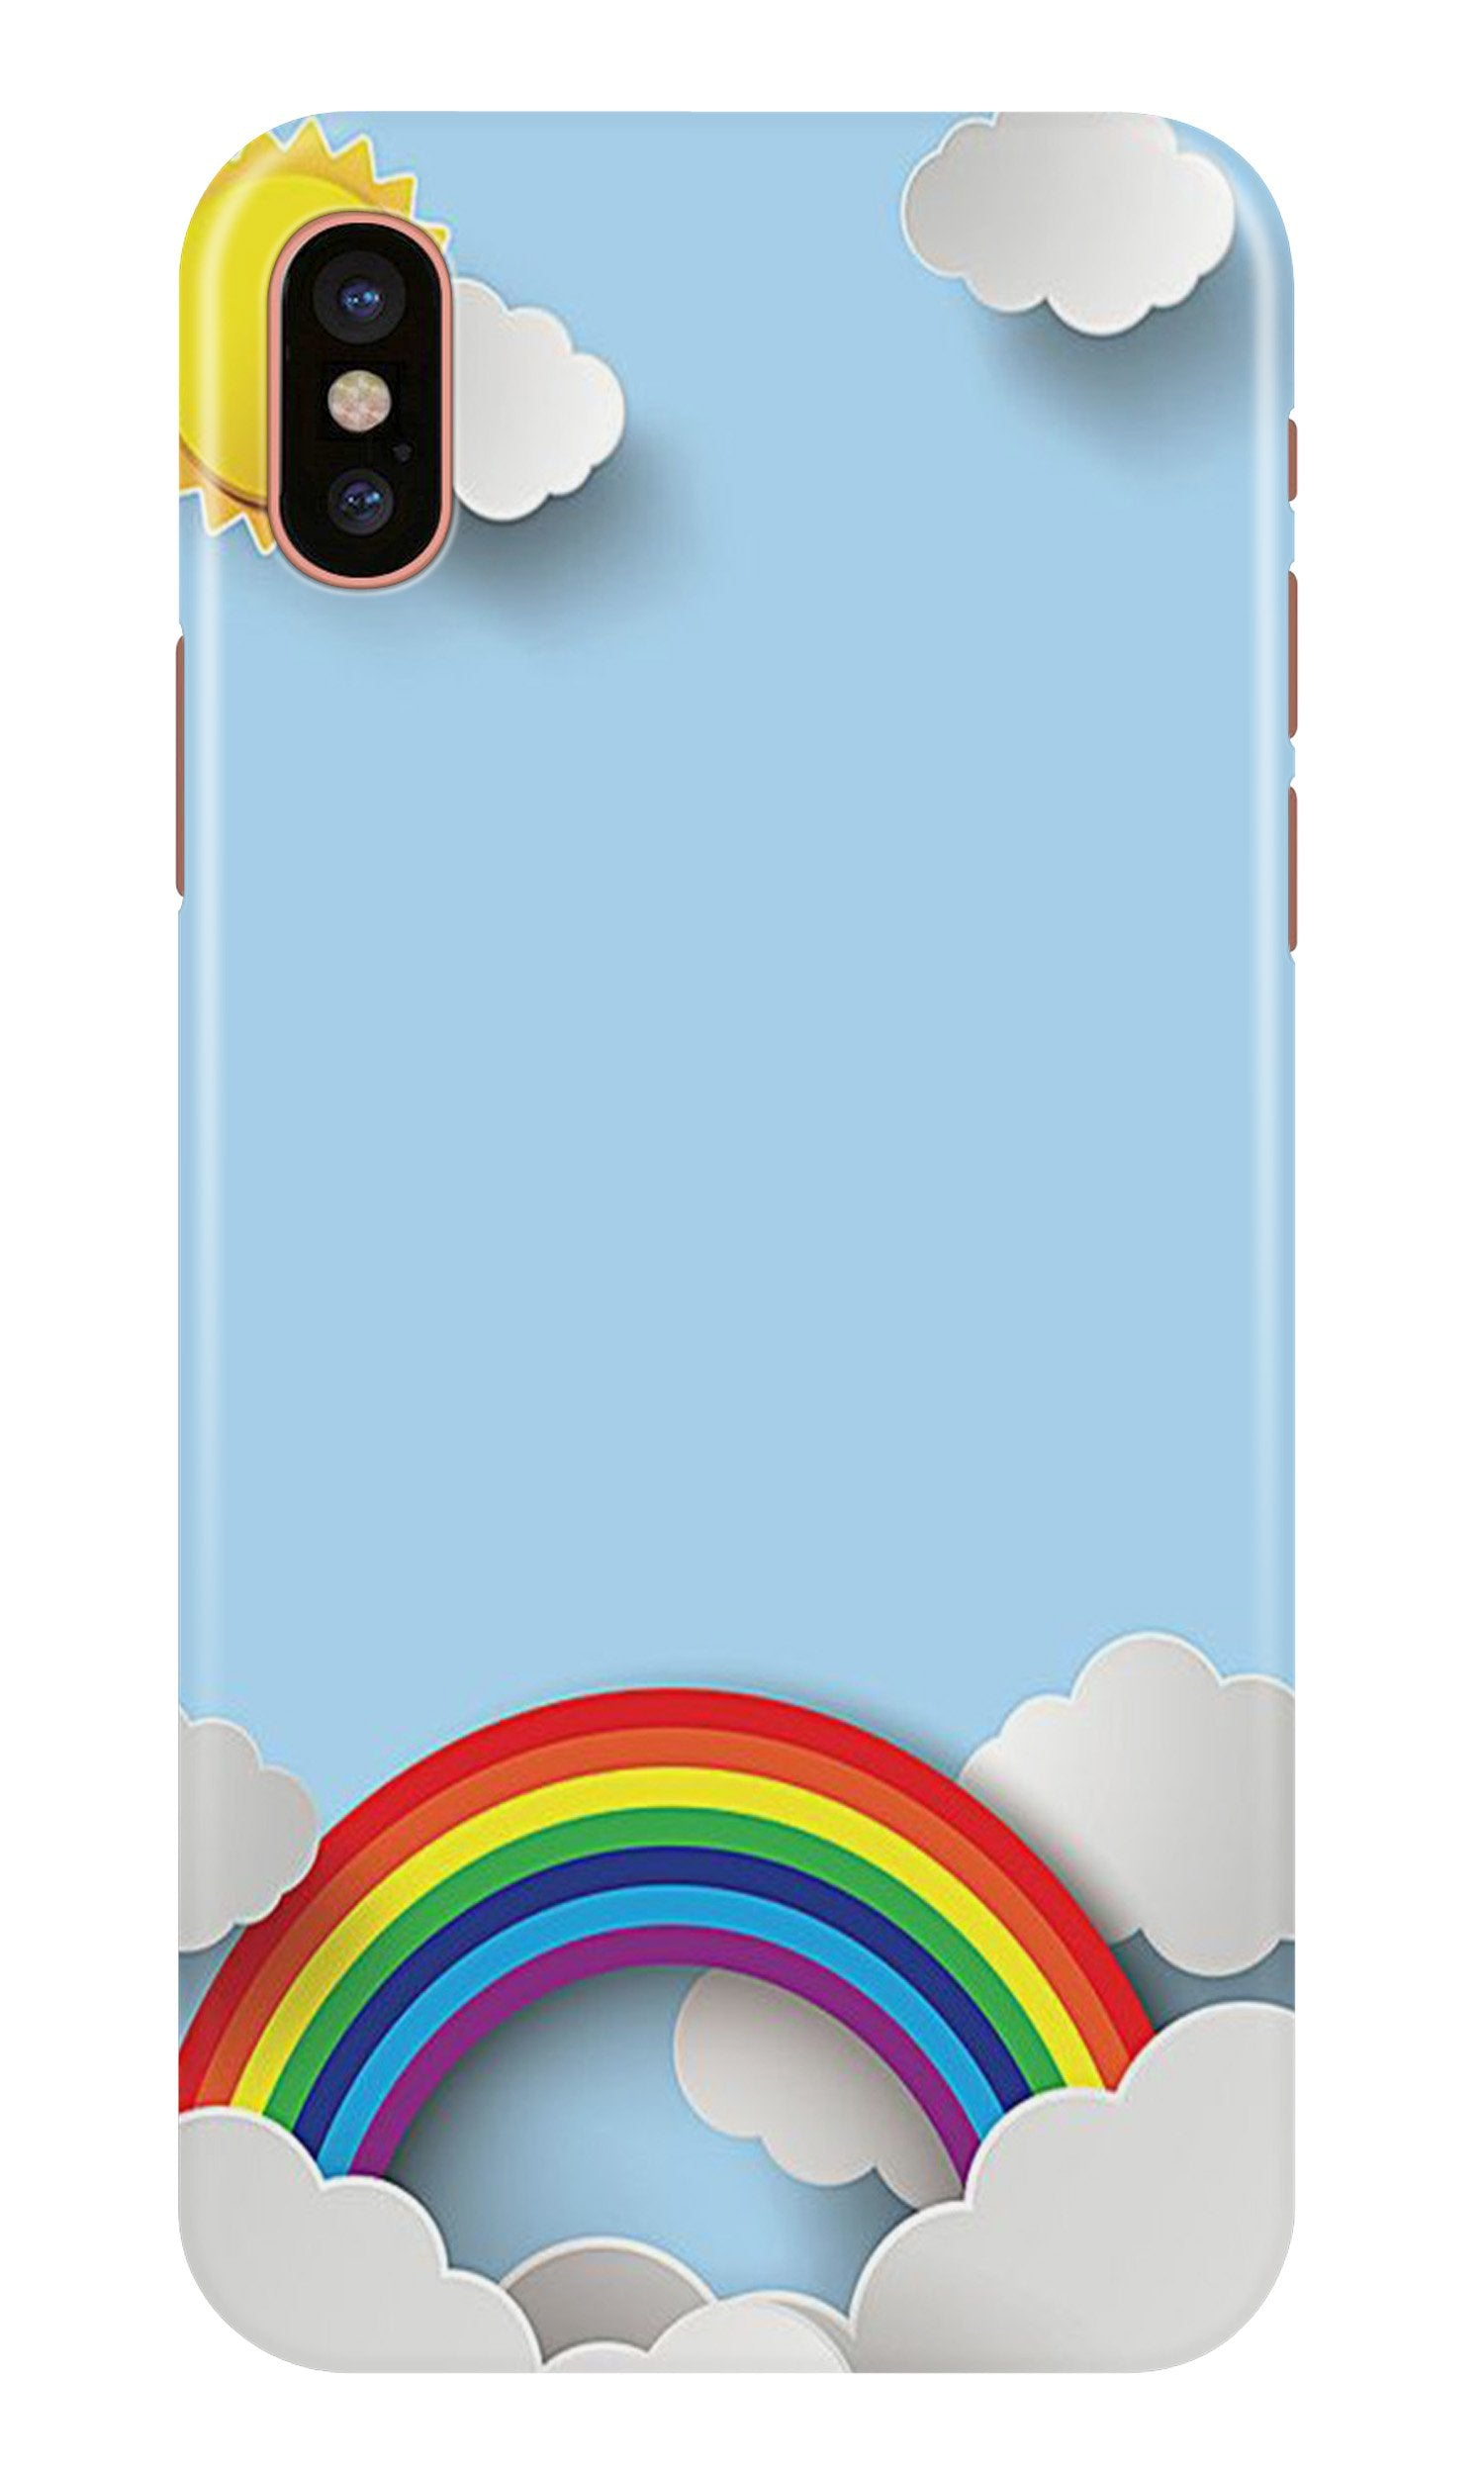 Rainbow Case for iPhone X (Design No. 225)